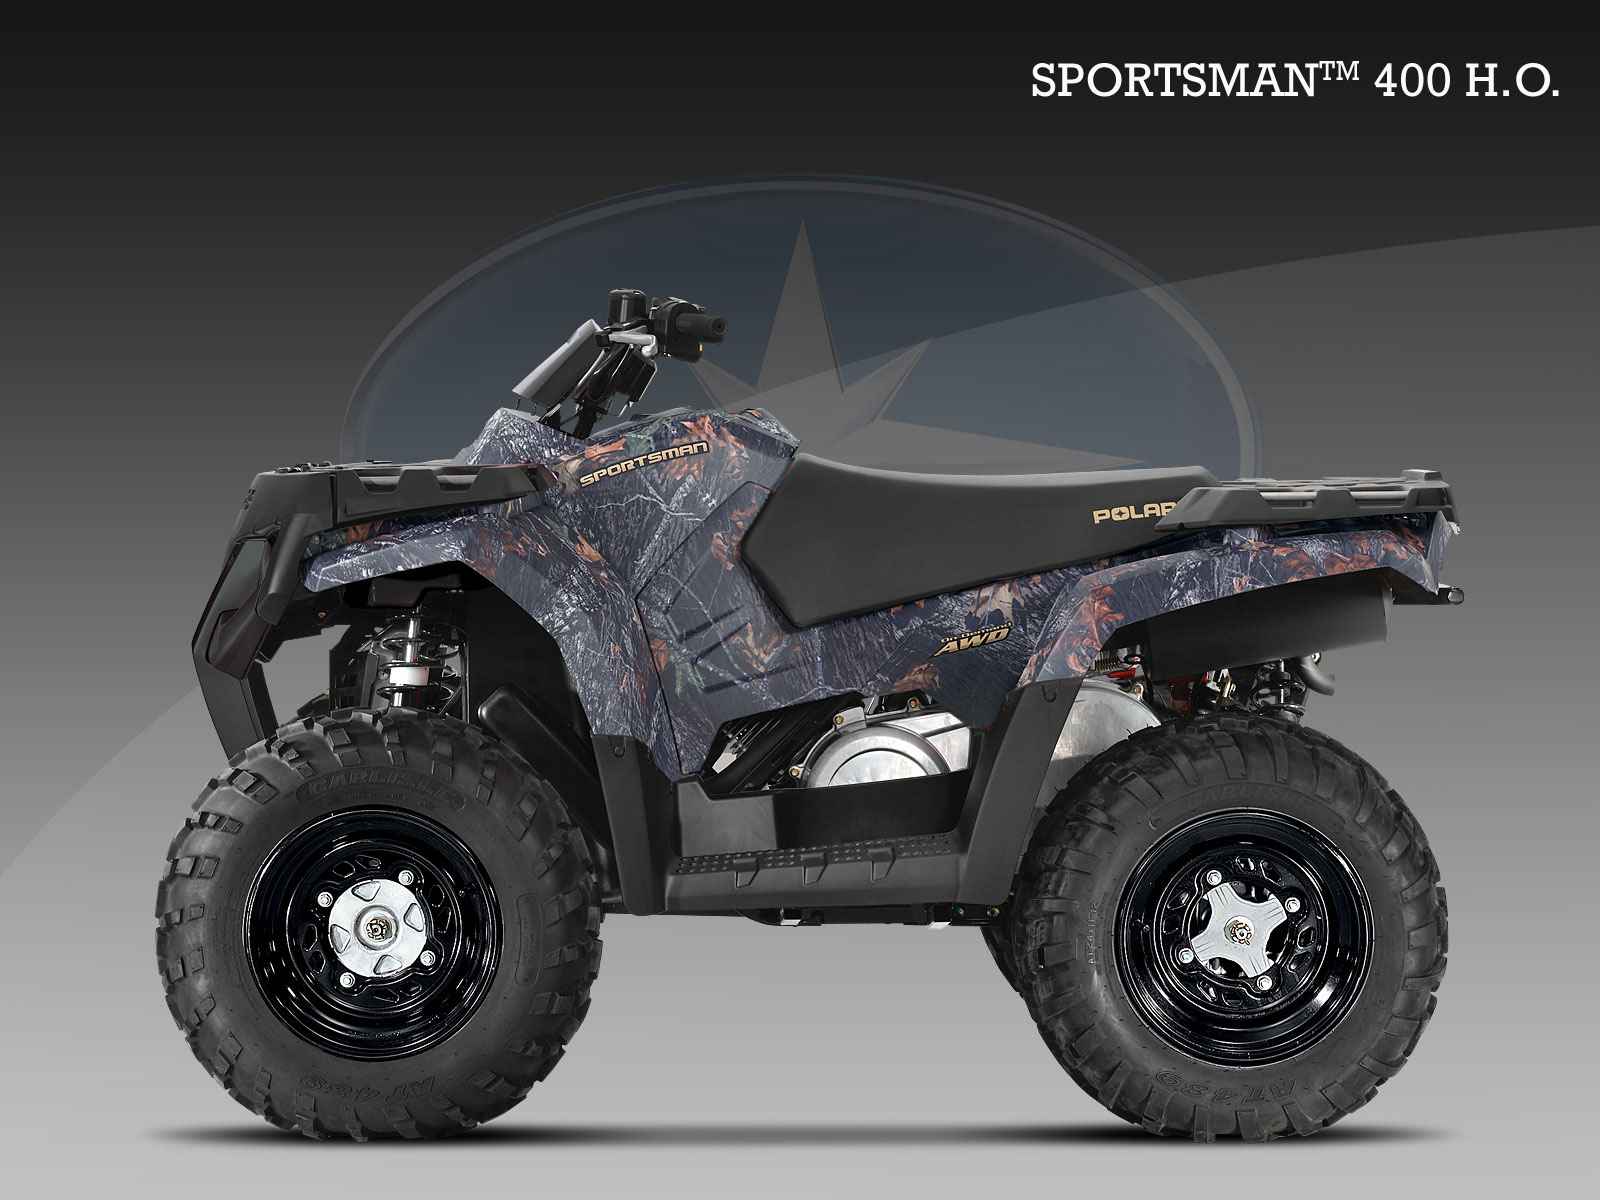 POLARIS Sportsman 400 H.O. specs - 2008, 2009 - autoevolution